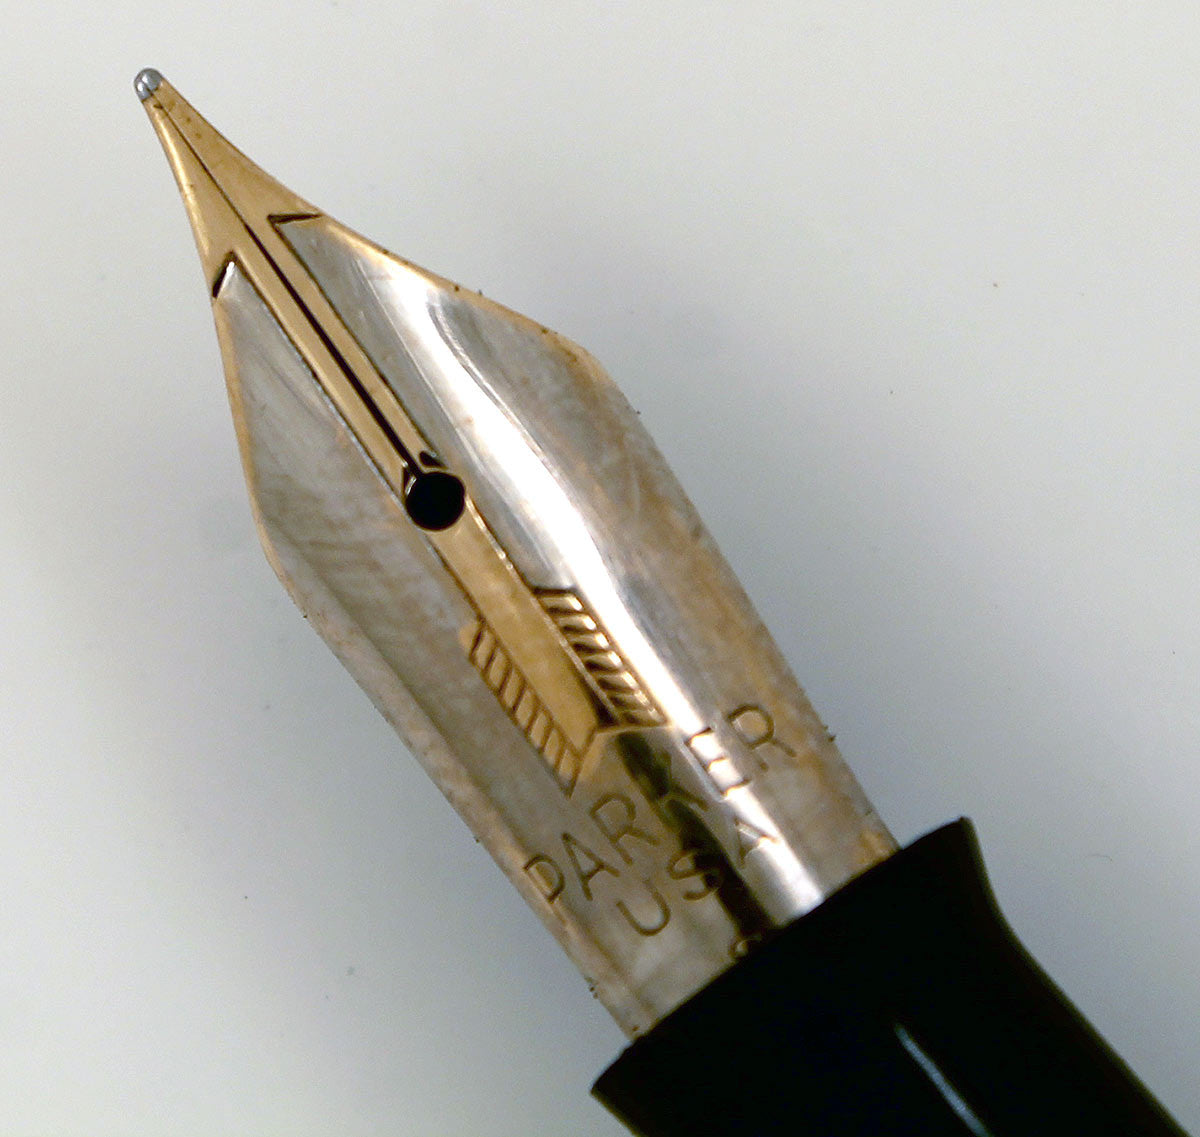 RESTORED 1940 PARKER VACUMATIC DOUBLE JEWEL FOUNTAIN PEN IN SILVER PEARL CELLULOID OFFERED BY ANTIQUE DIGGER